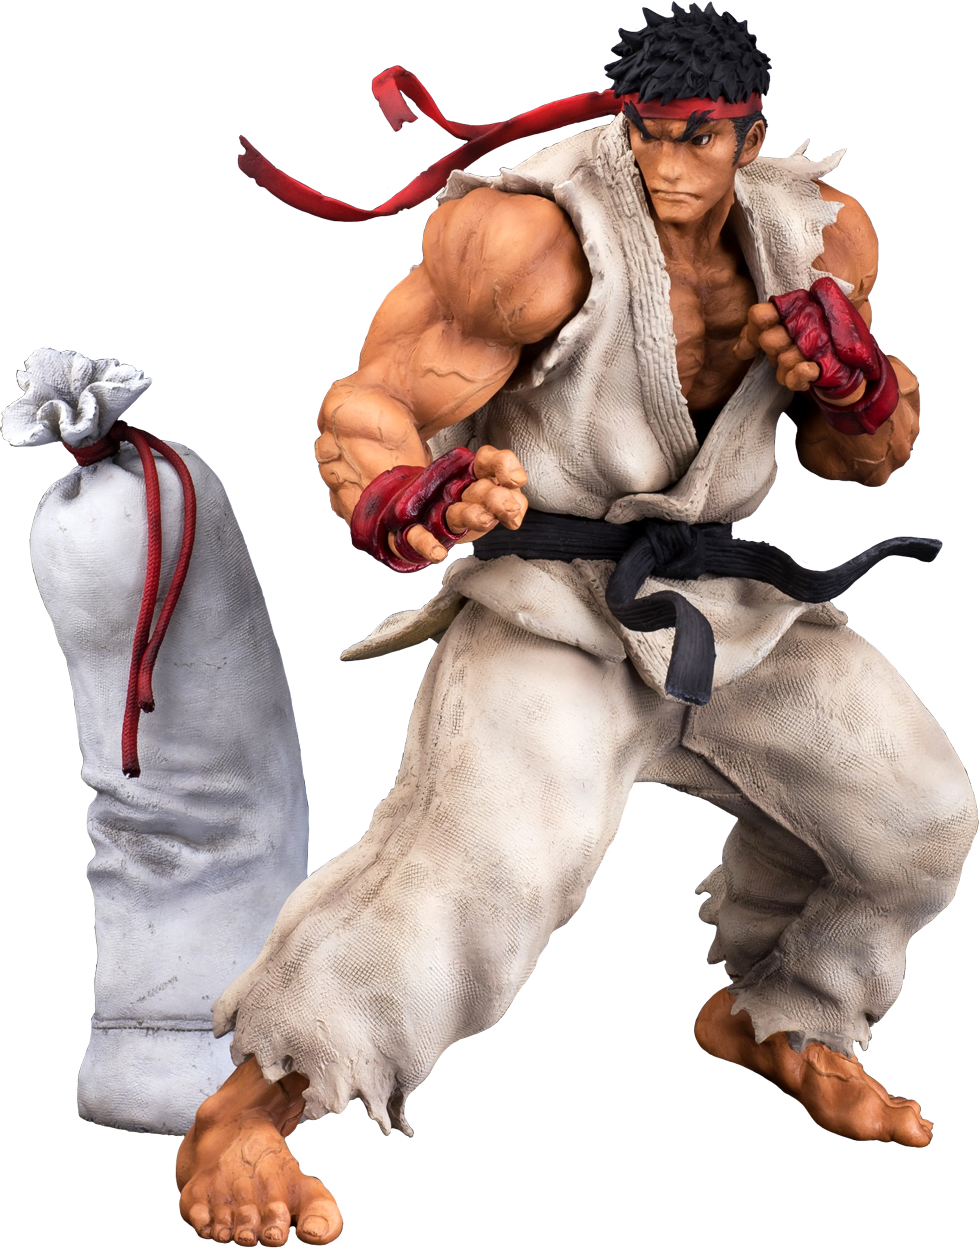 Ryu street fighter 5 png. Third strike fighters legendary